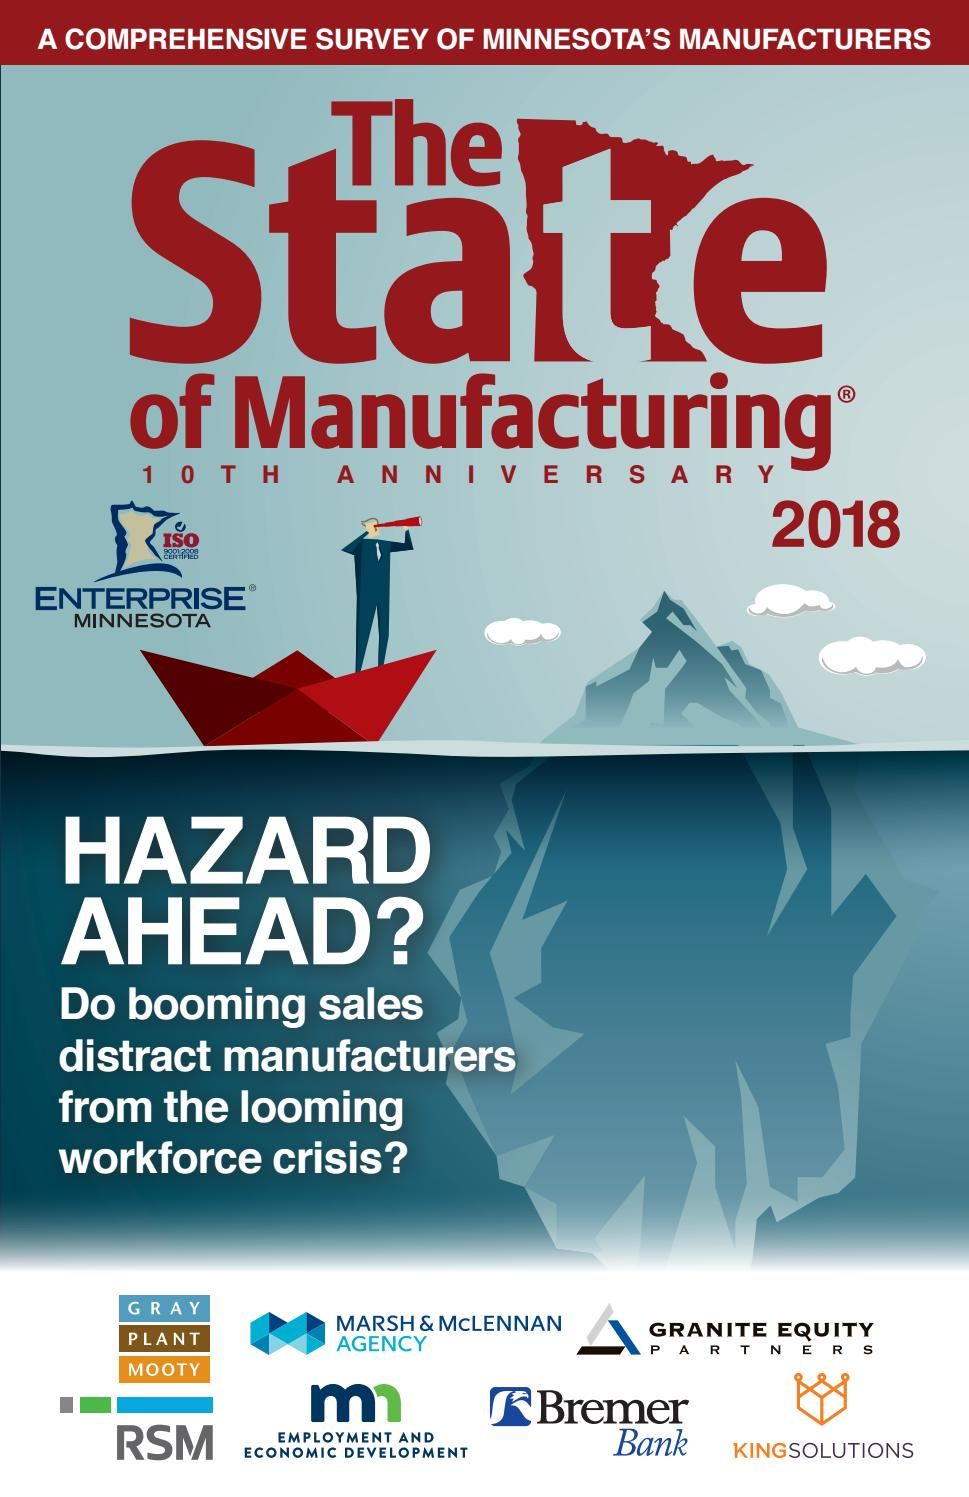 The State of Manufacturing® 2018 - Complete Survey Book by